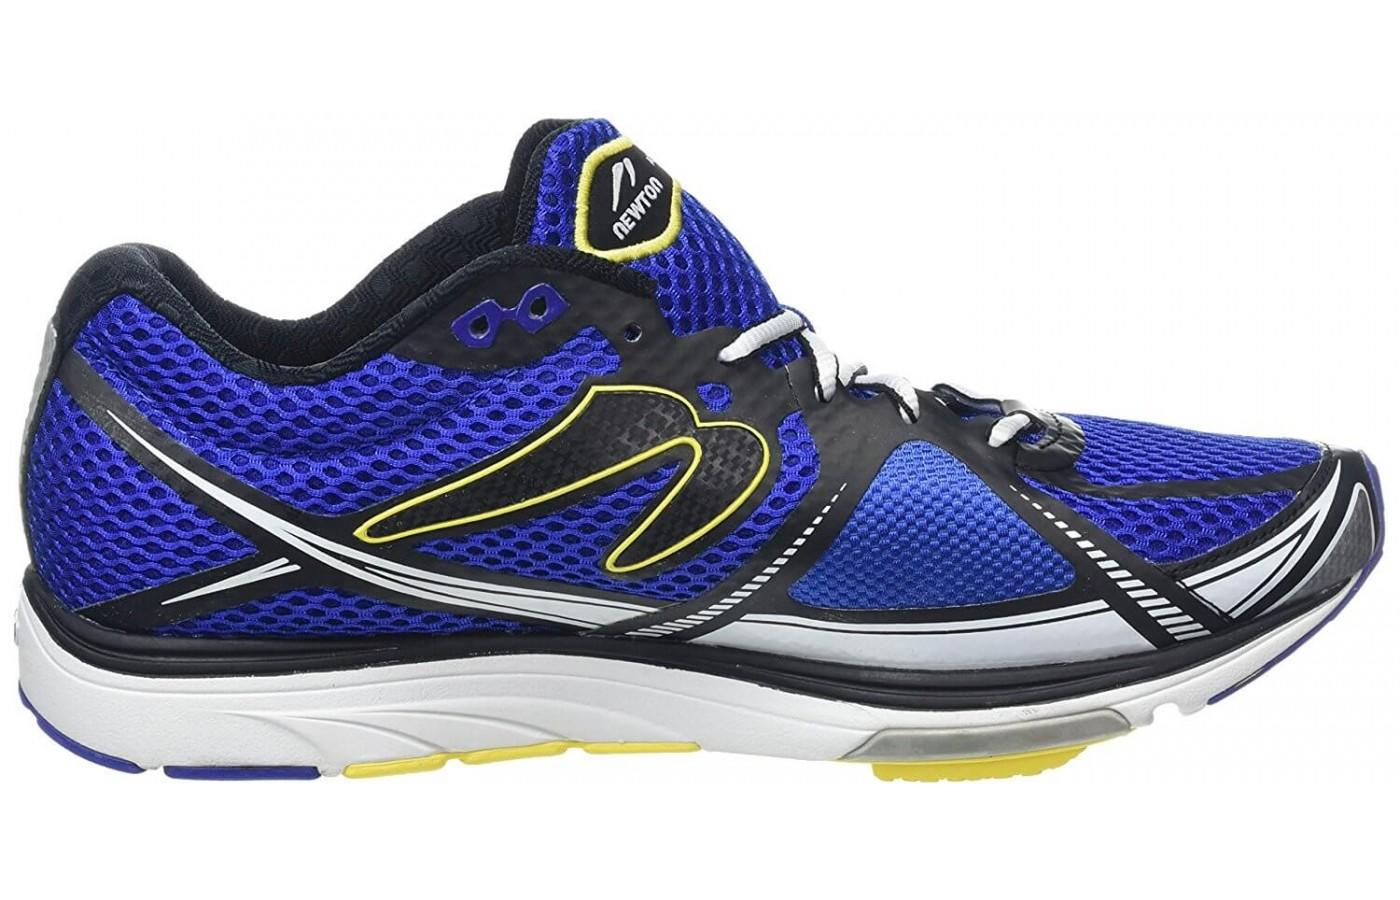 The shoe features a low, 4.5 millimeter drop.